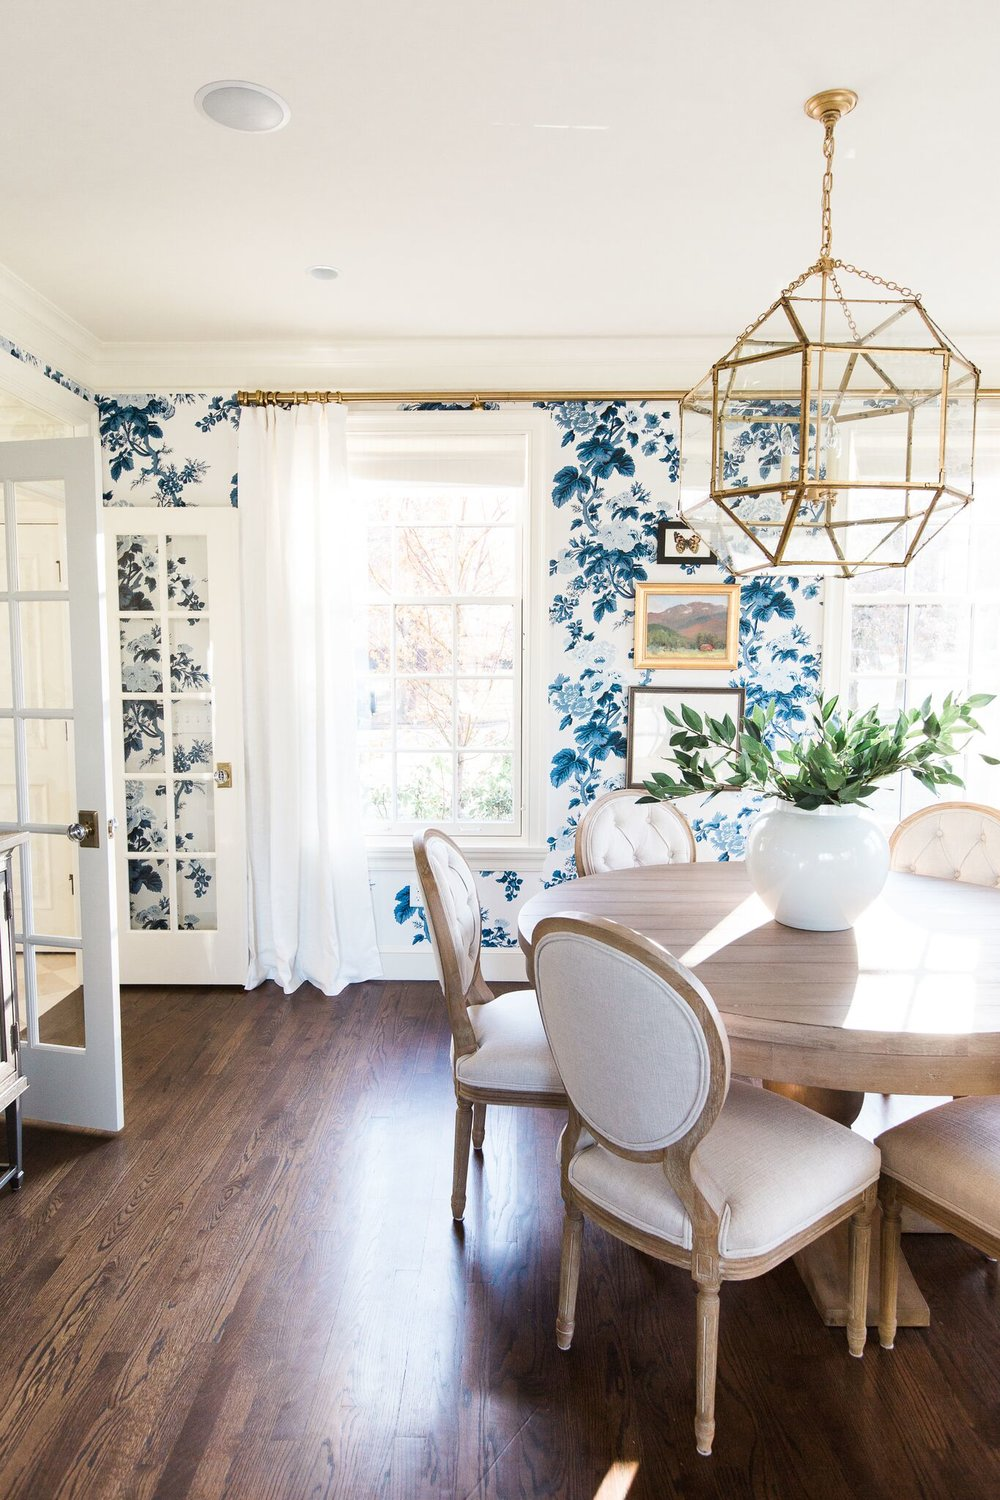 French doors beside dining table